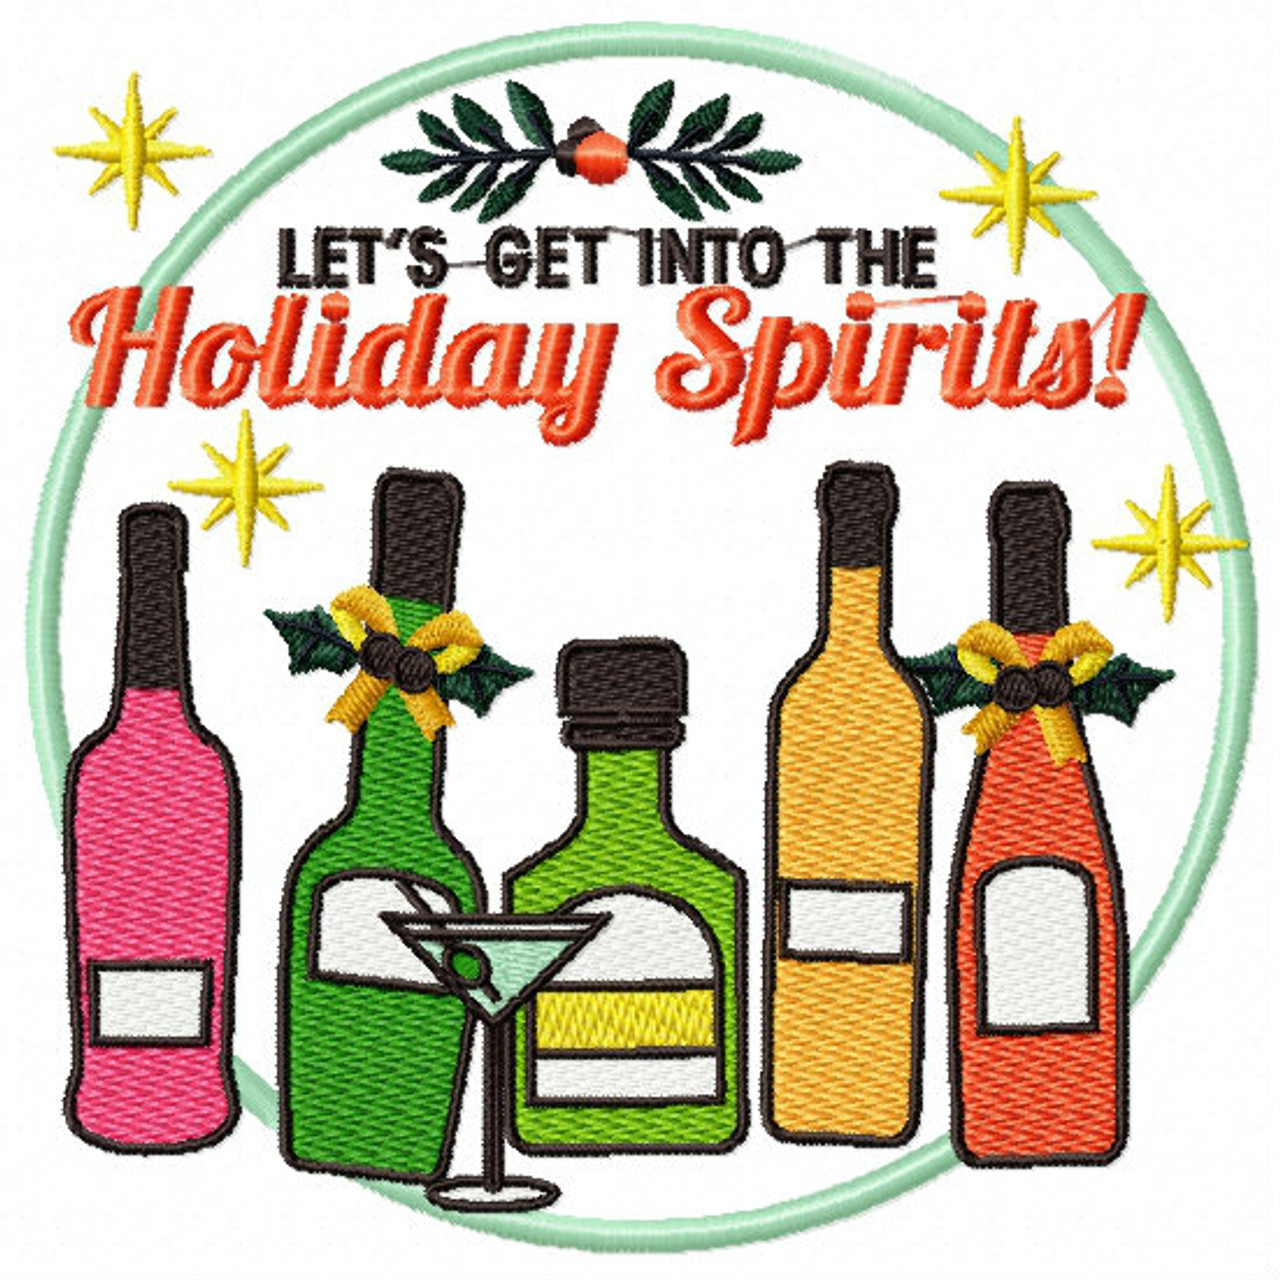 Christmas Humor Images.Let S Get Into The Holiday Spirits Christmas Humor Booze 04 Machine Embroidery Design